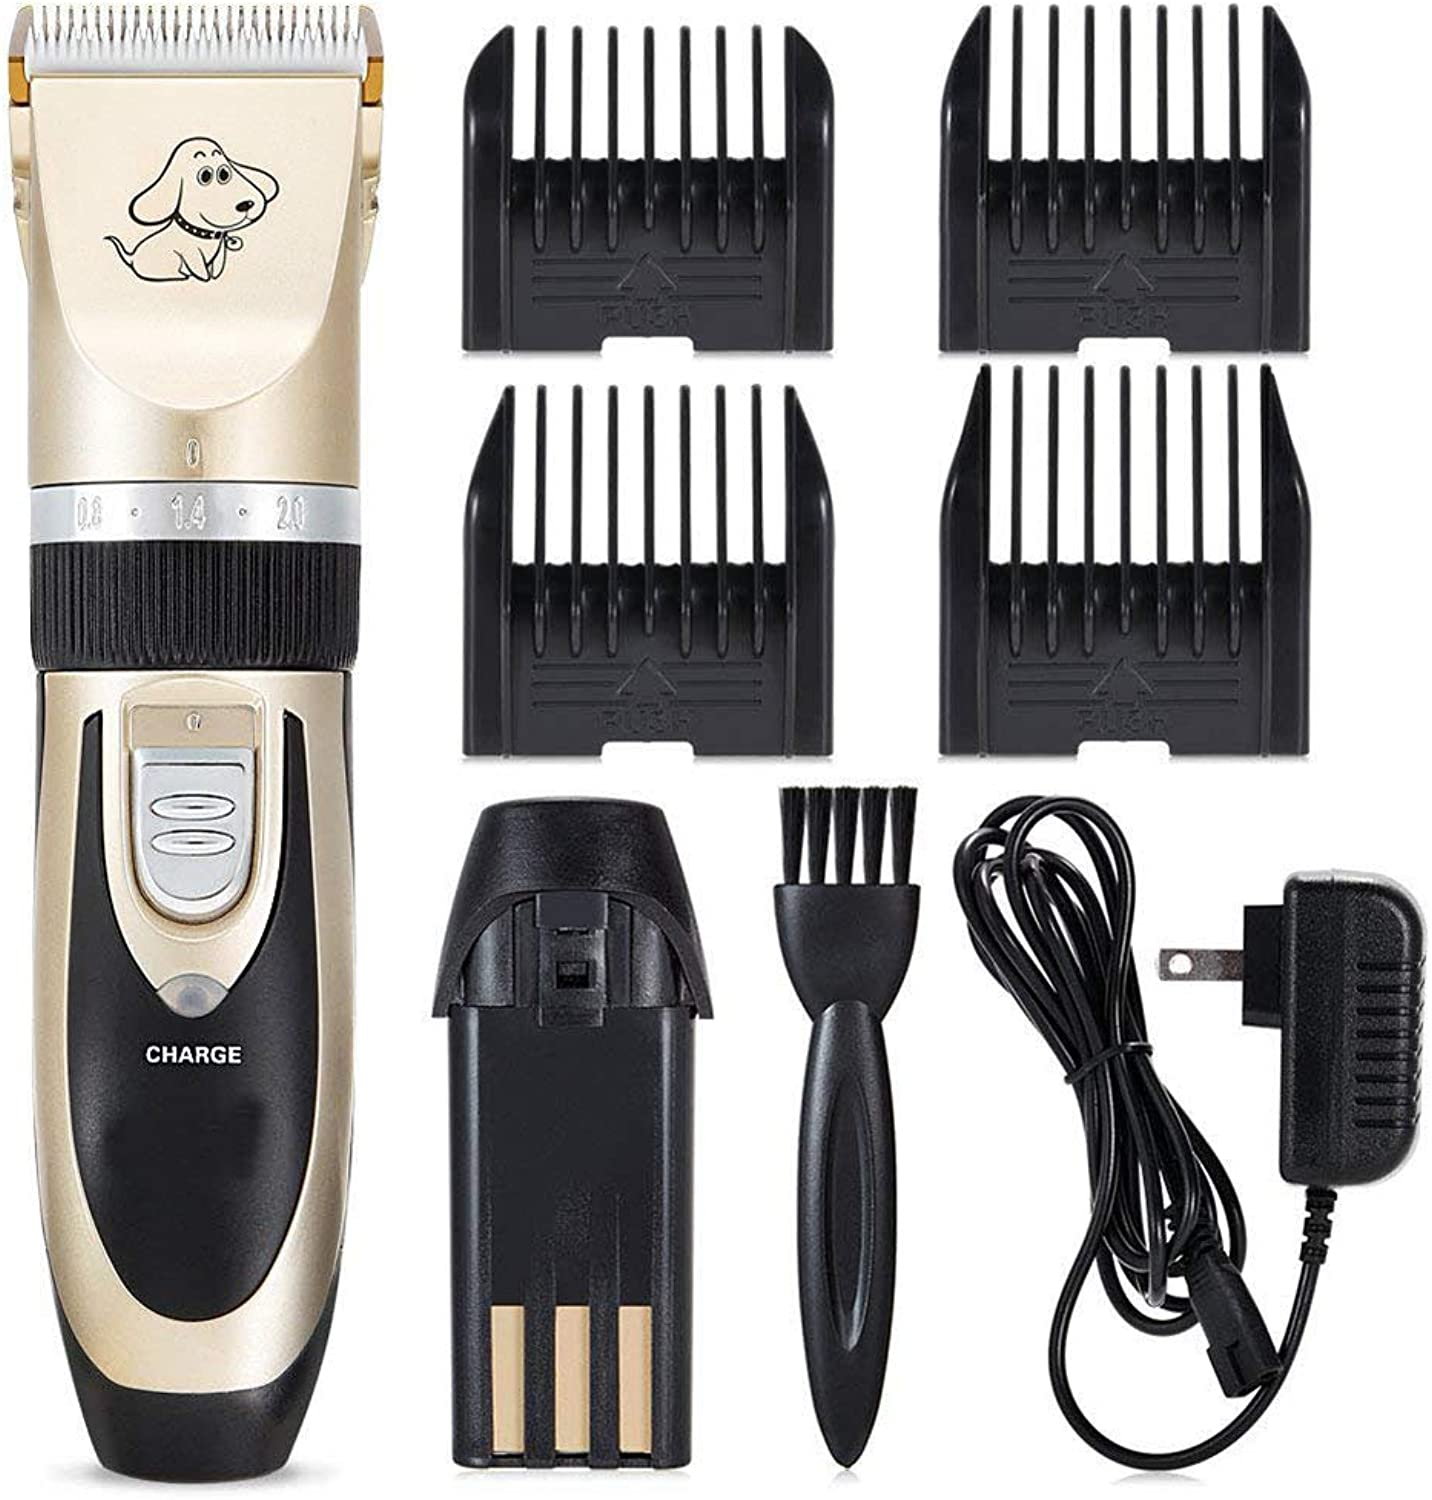 Rechargeable Cordless Dogs and Cats Grooming Clippers  Professional Pet Hair Clippers with Comb Guides for Dogs Cats and Other House Animals,Pet Grooming Kit